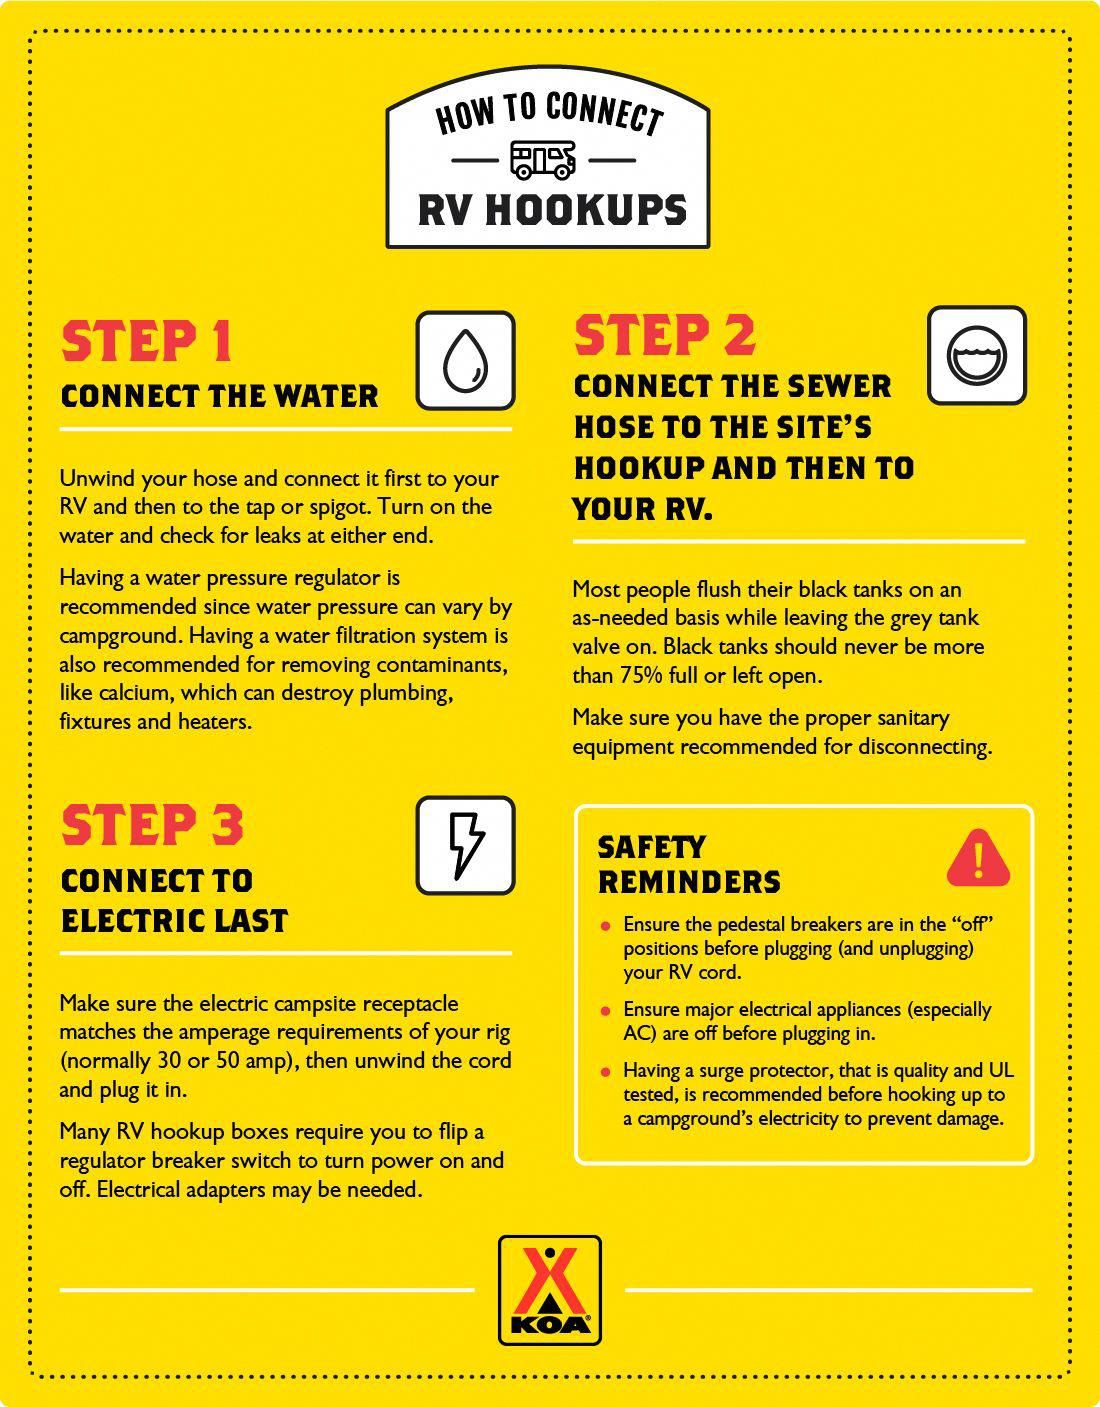 A Bit Nervous About Camping These Tips Will Set You At Ease